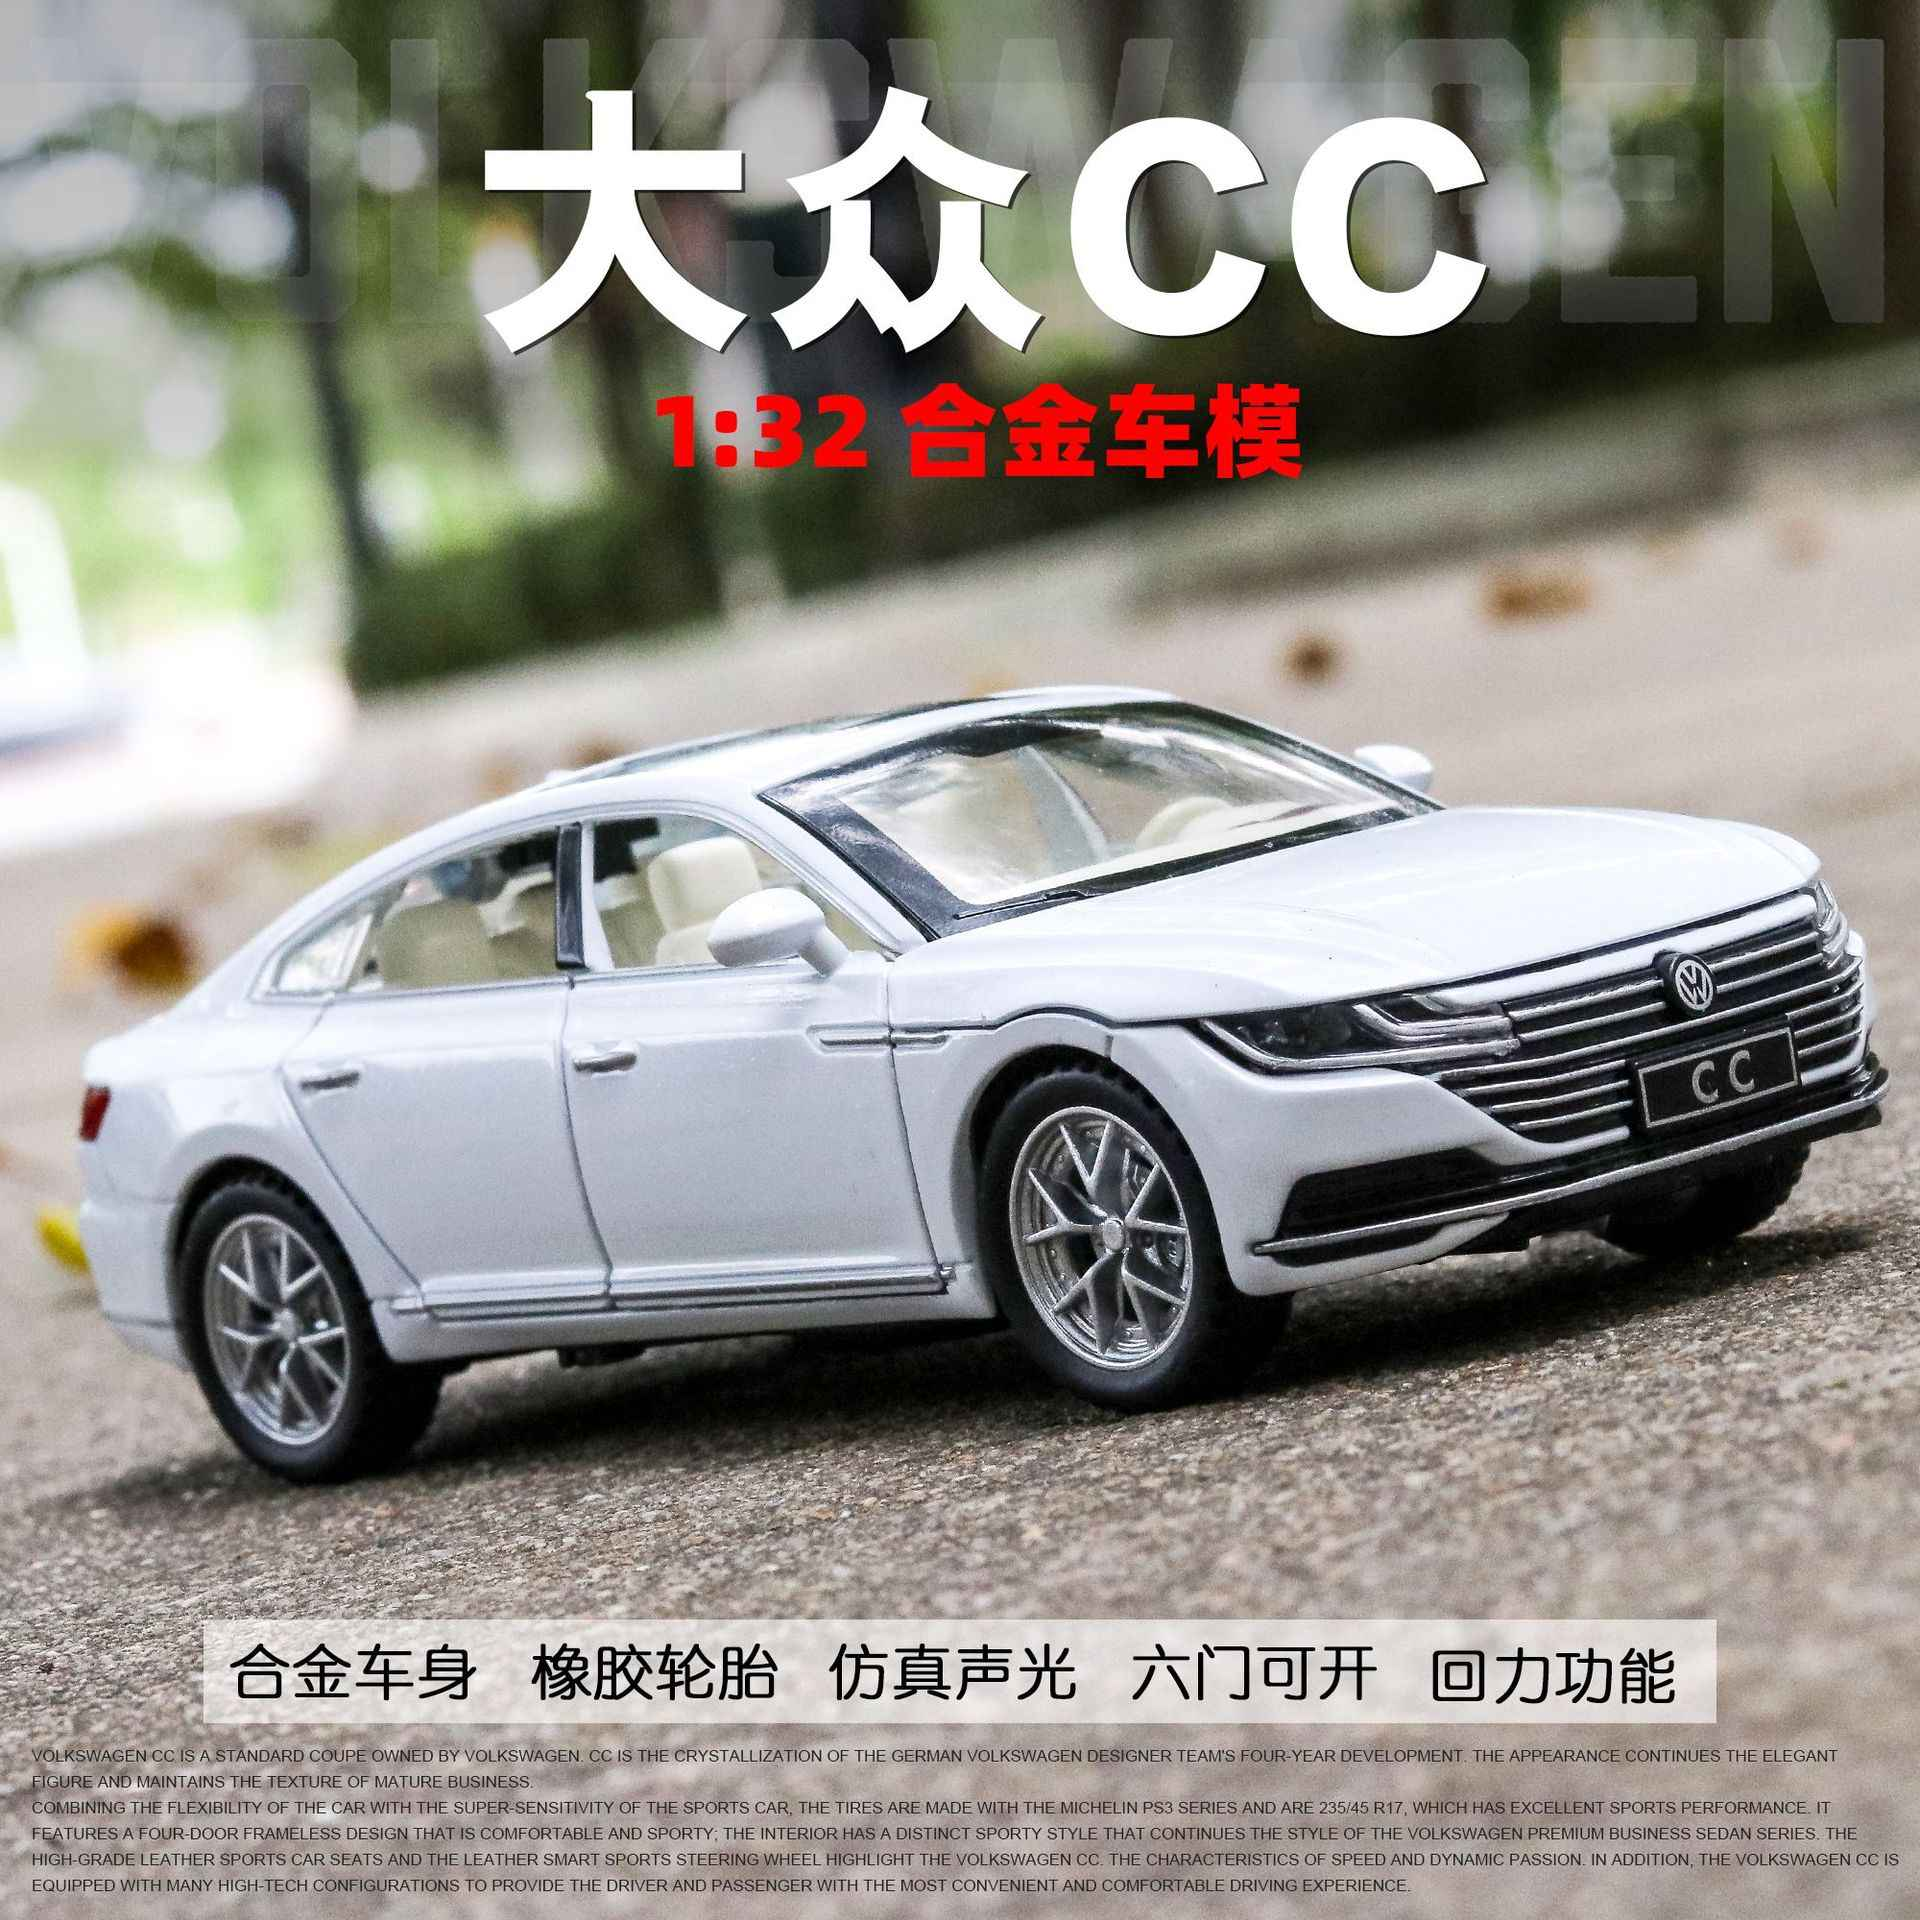 1:32 high simulation Volkswagen CC with sound and light door open alloy toy car for children gifts